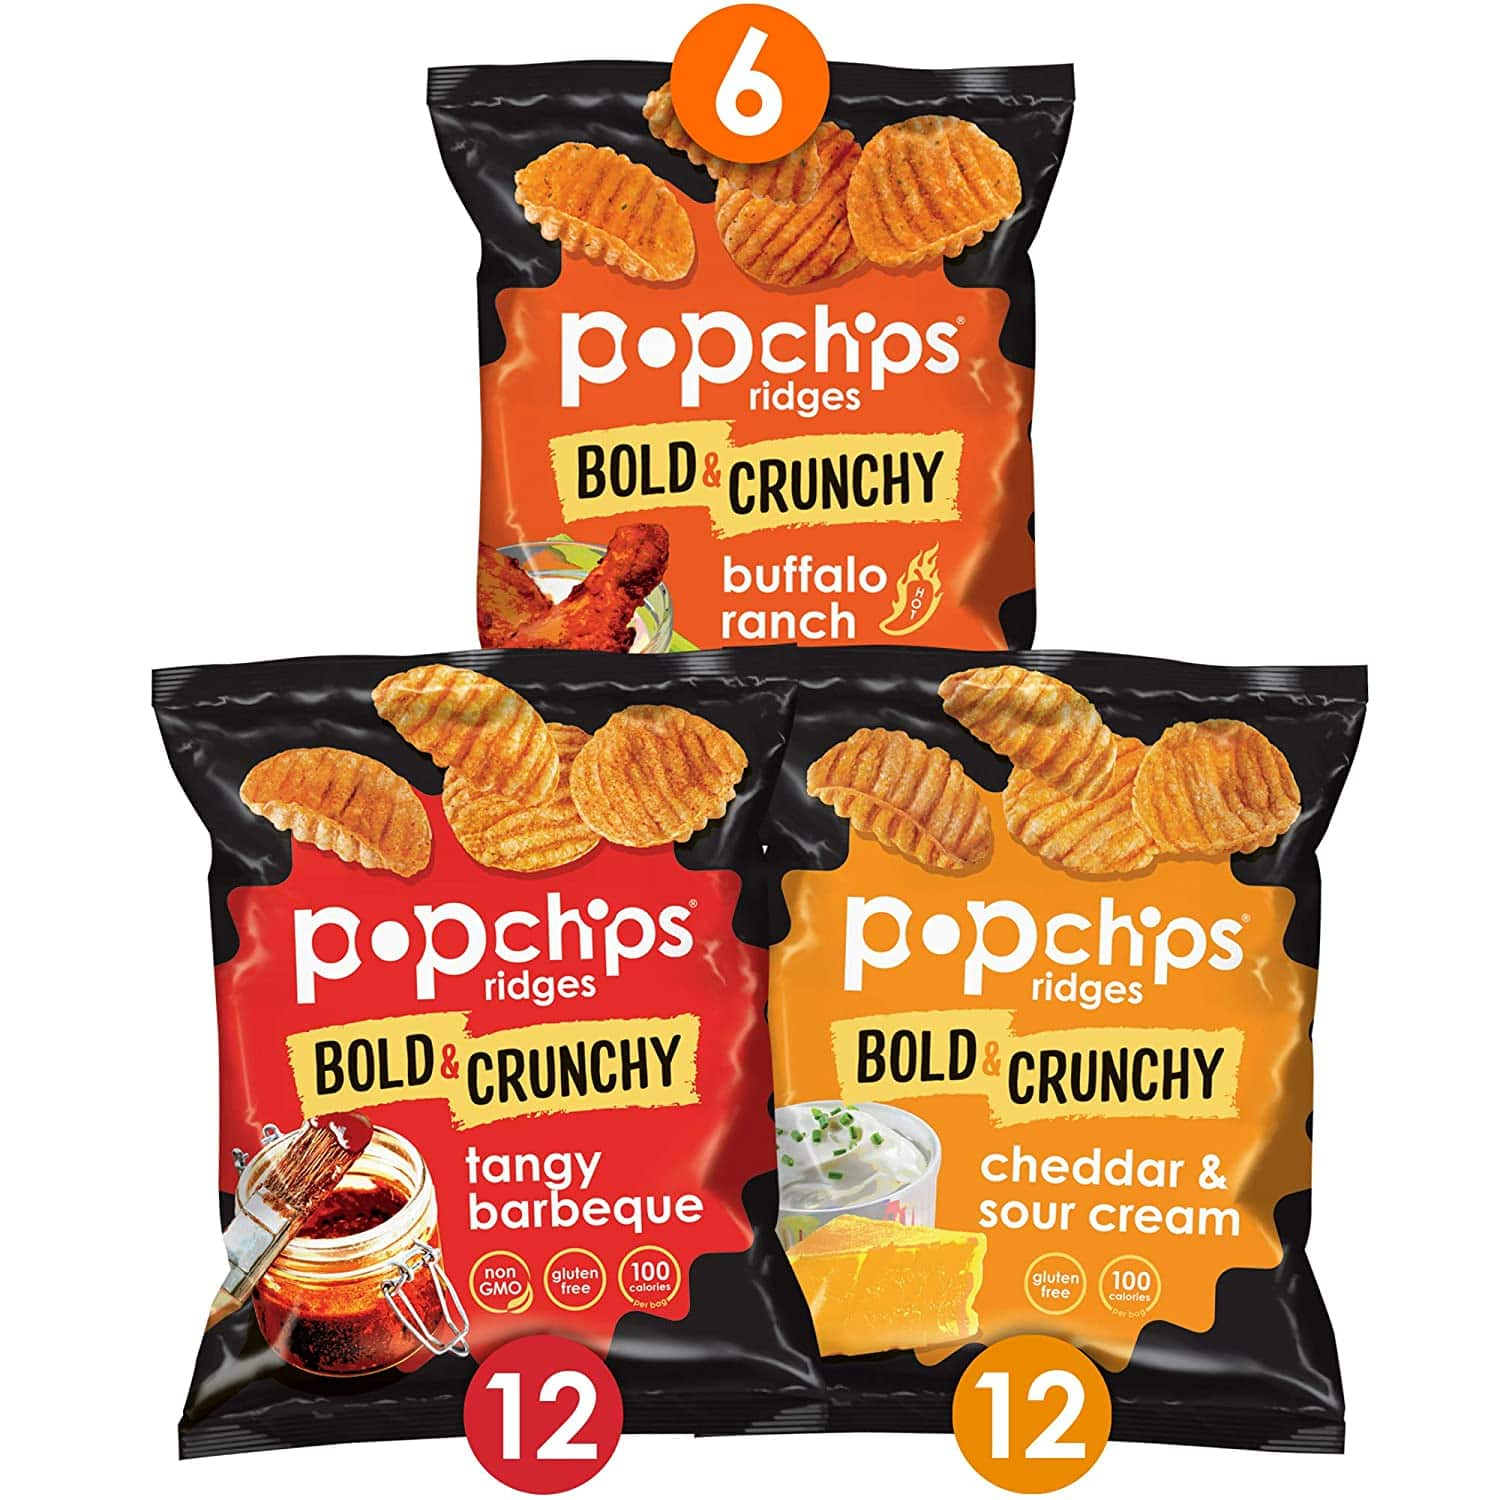 Popchips Ridges Potato Chips Variety Pack Single Serve 0.8 oz Bags (Pack of 30) 3 Flavors $8.82 w Free Ship w S&S $7.5